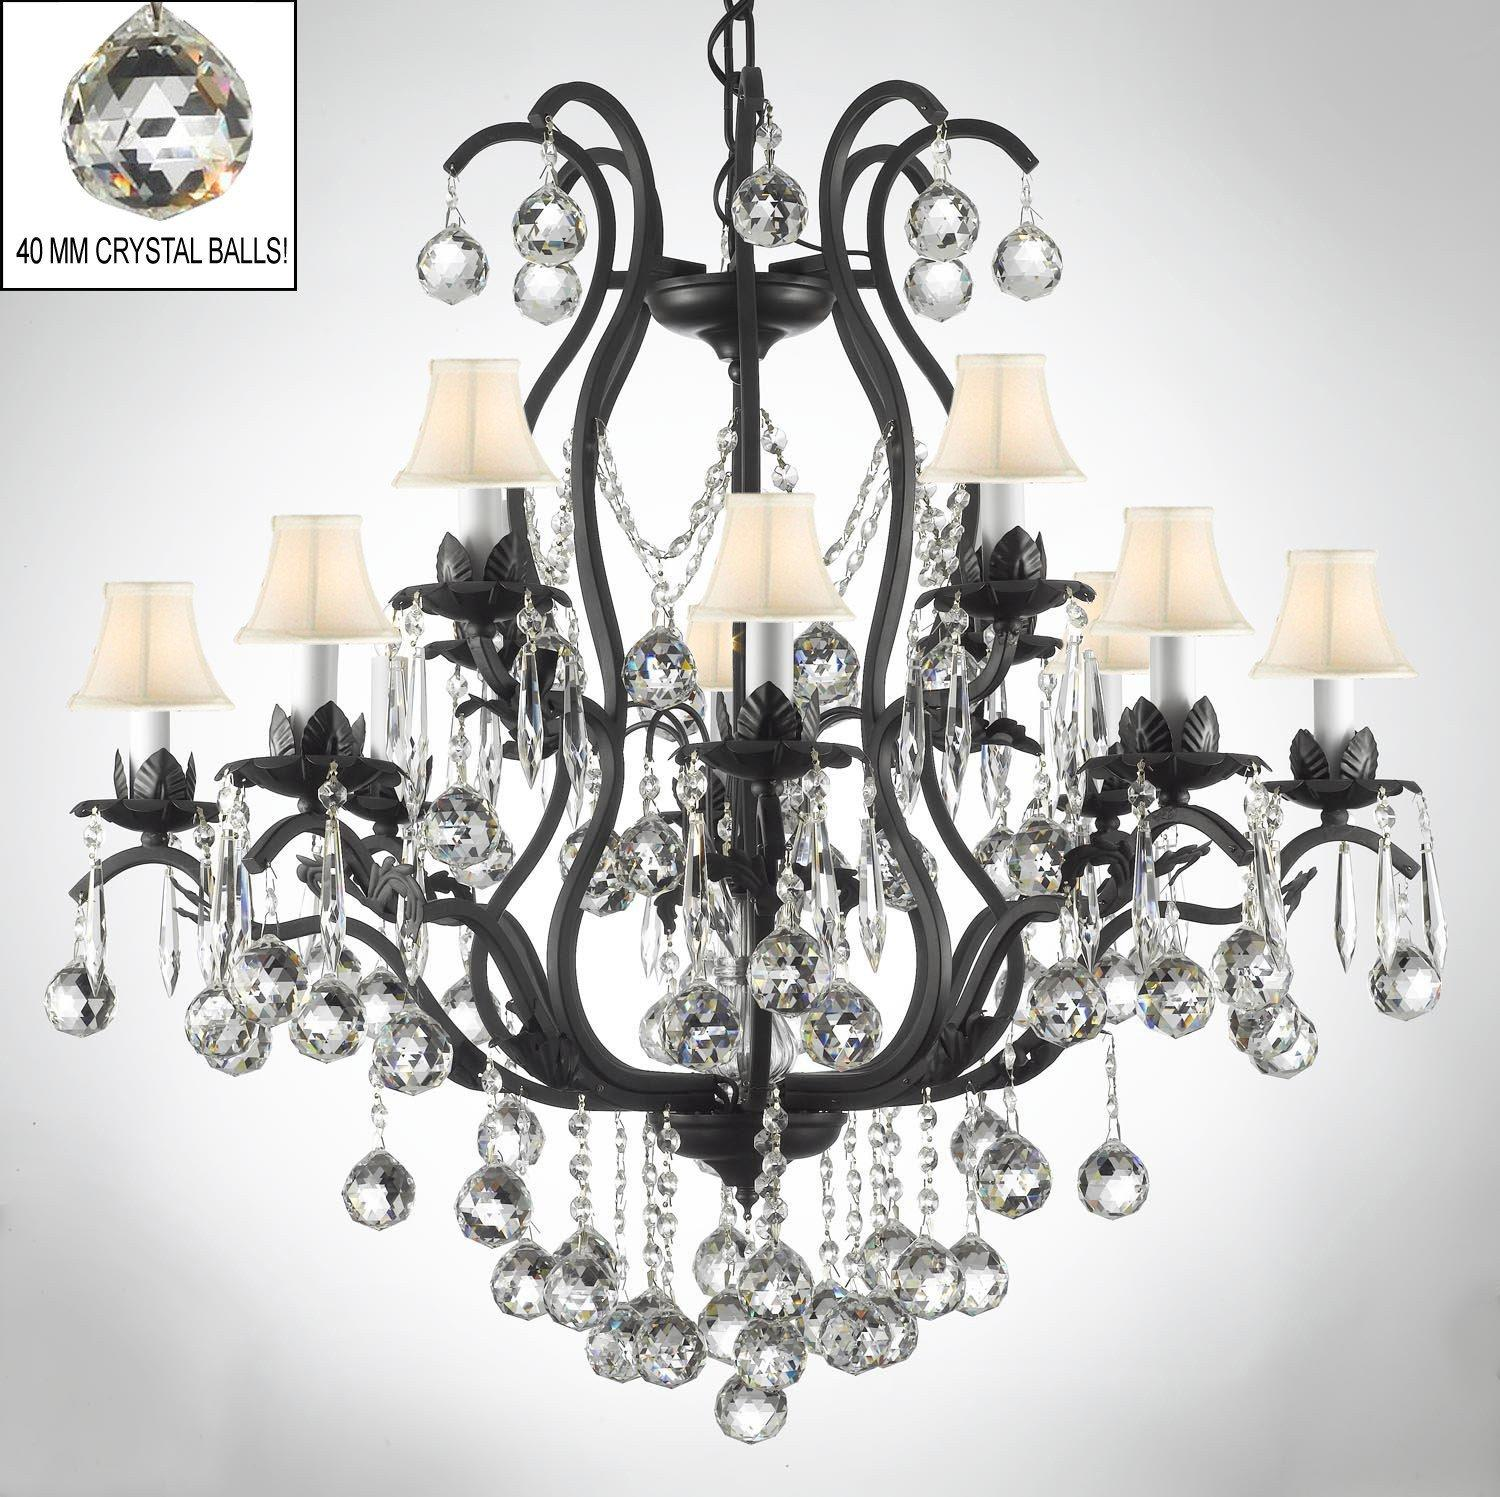 Wrought Iron Empress Crystal Chandelier Lighting S Dressed With Faceted White Shades On Free Shipping Today